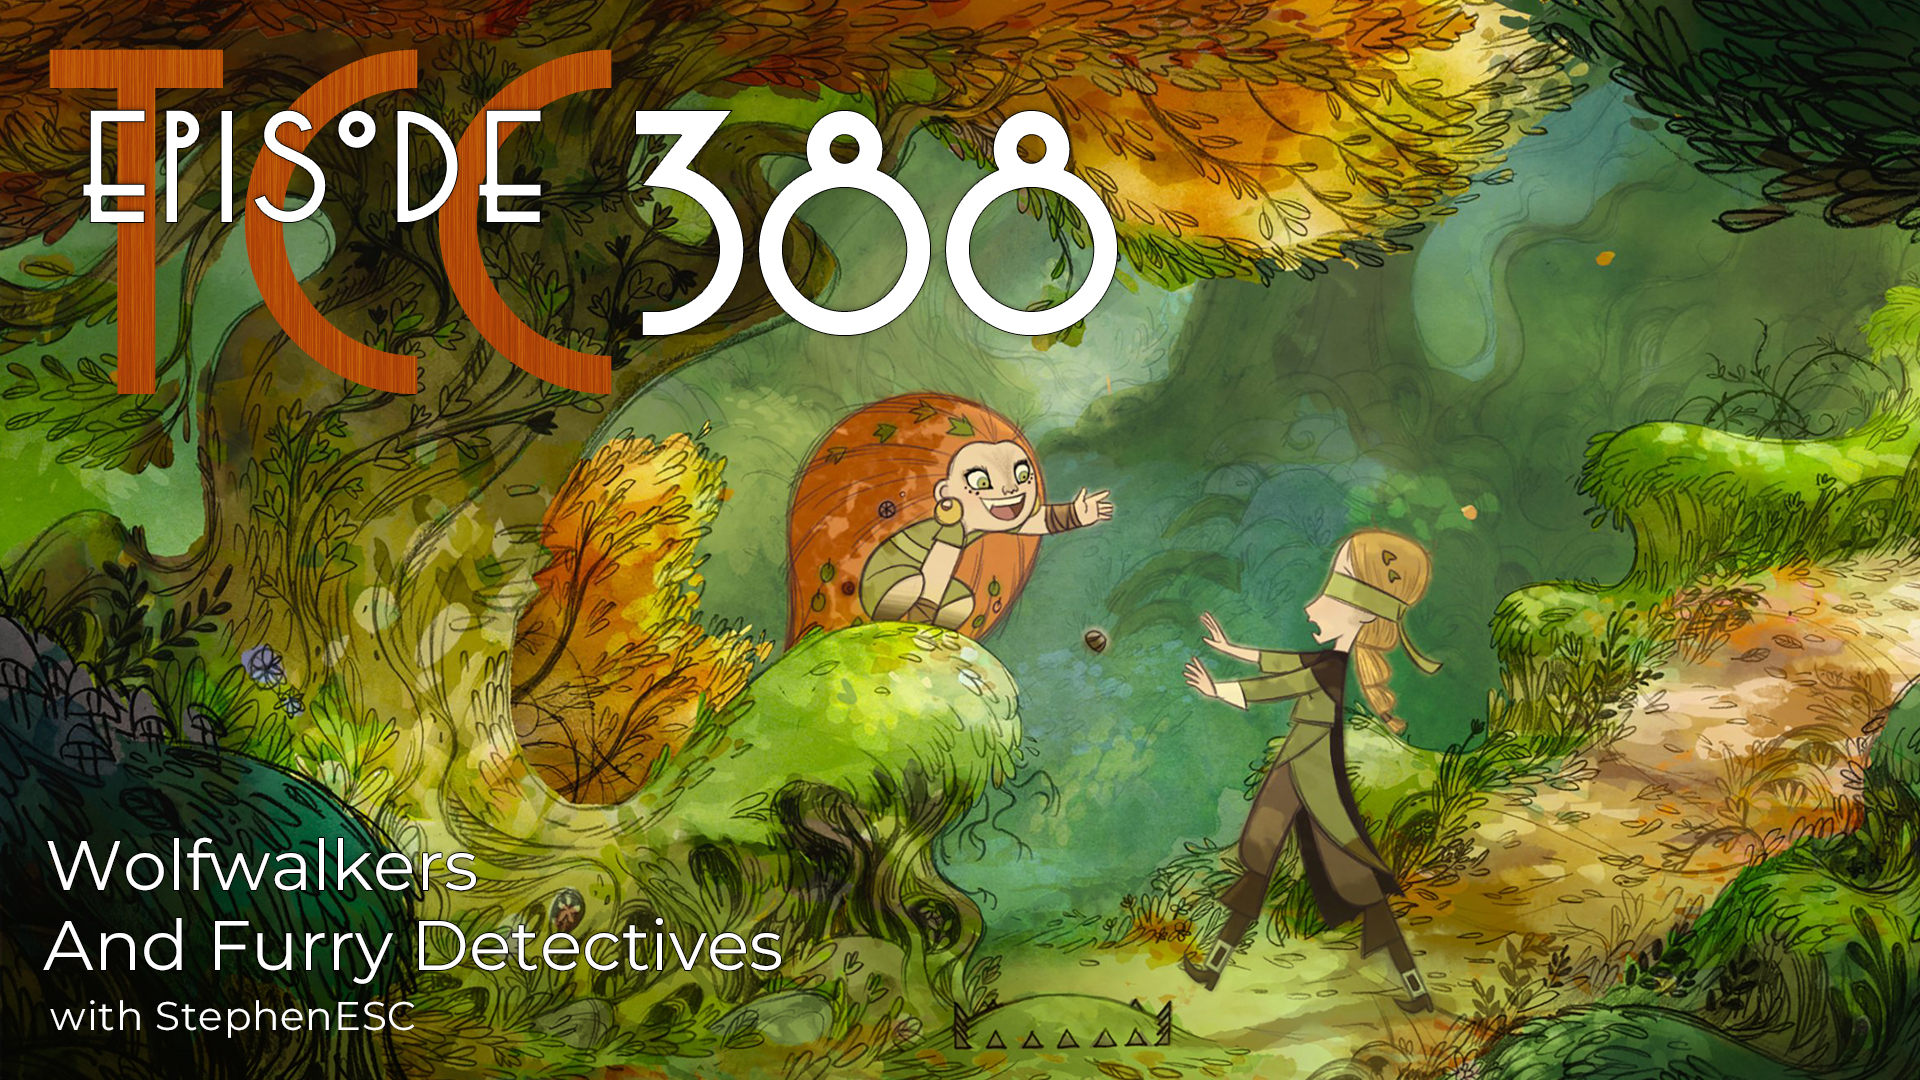 The Citadel Cafe 388: Wolfwalkers And Furry Detectives